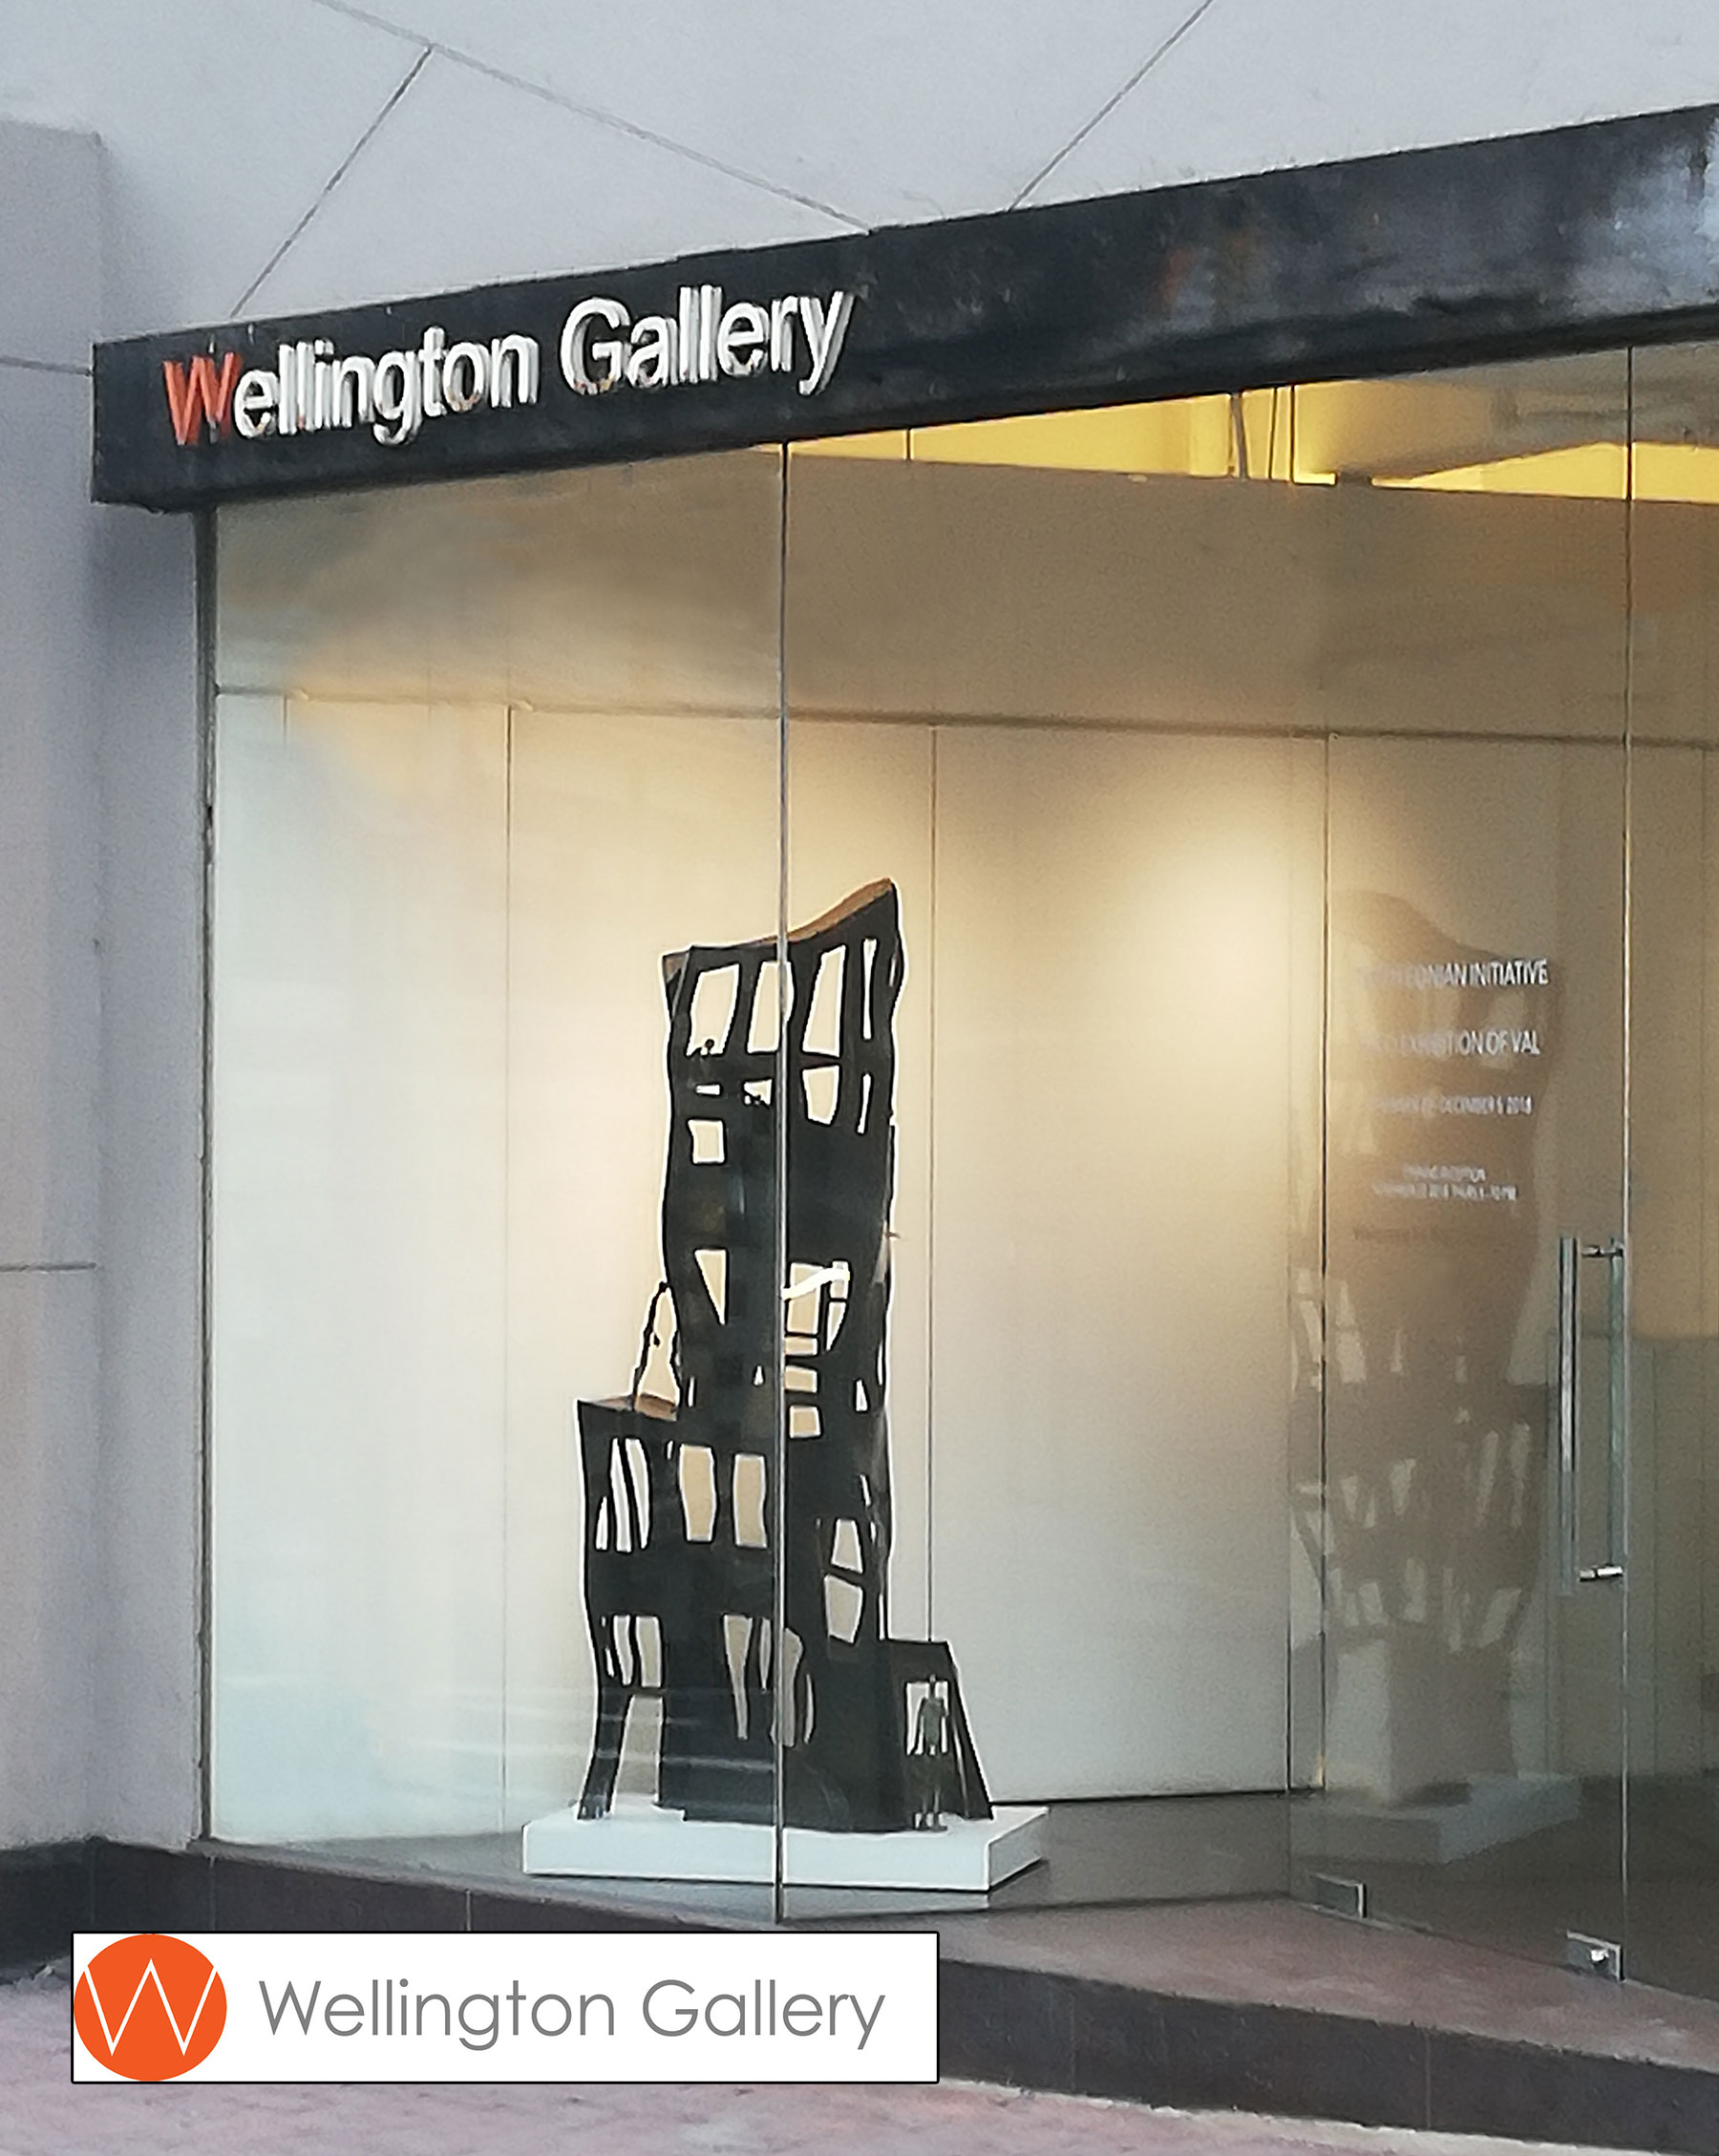 French sculptor Val - Valérie Goutard - with Wellington Gallery with Sculptureval